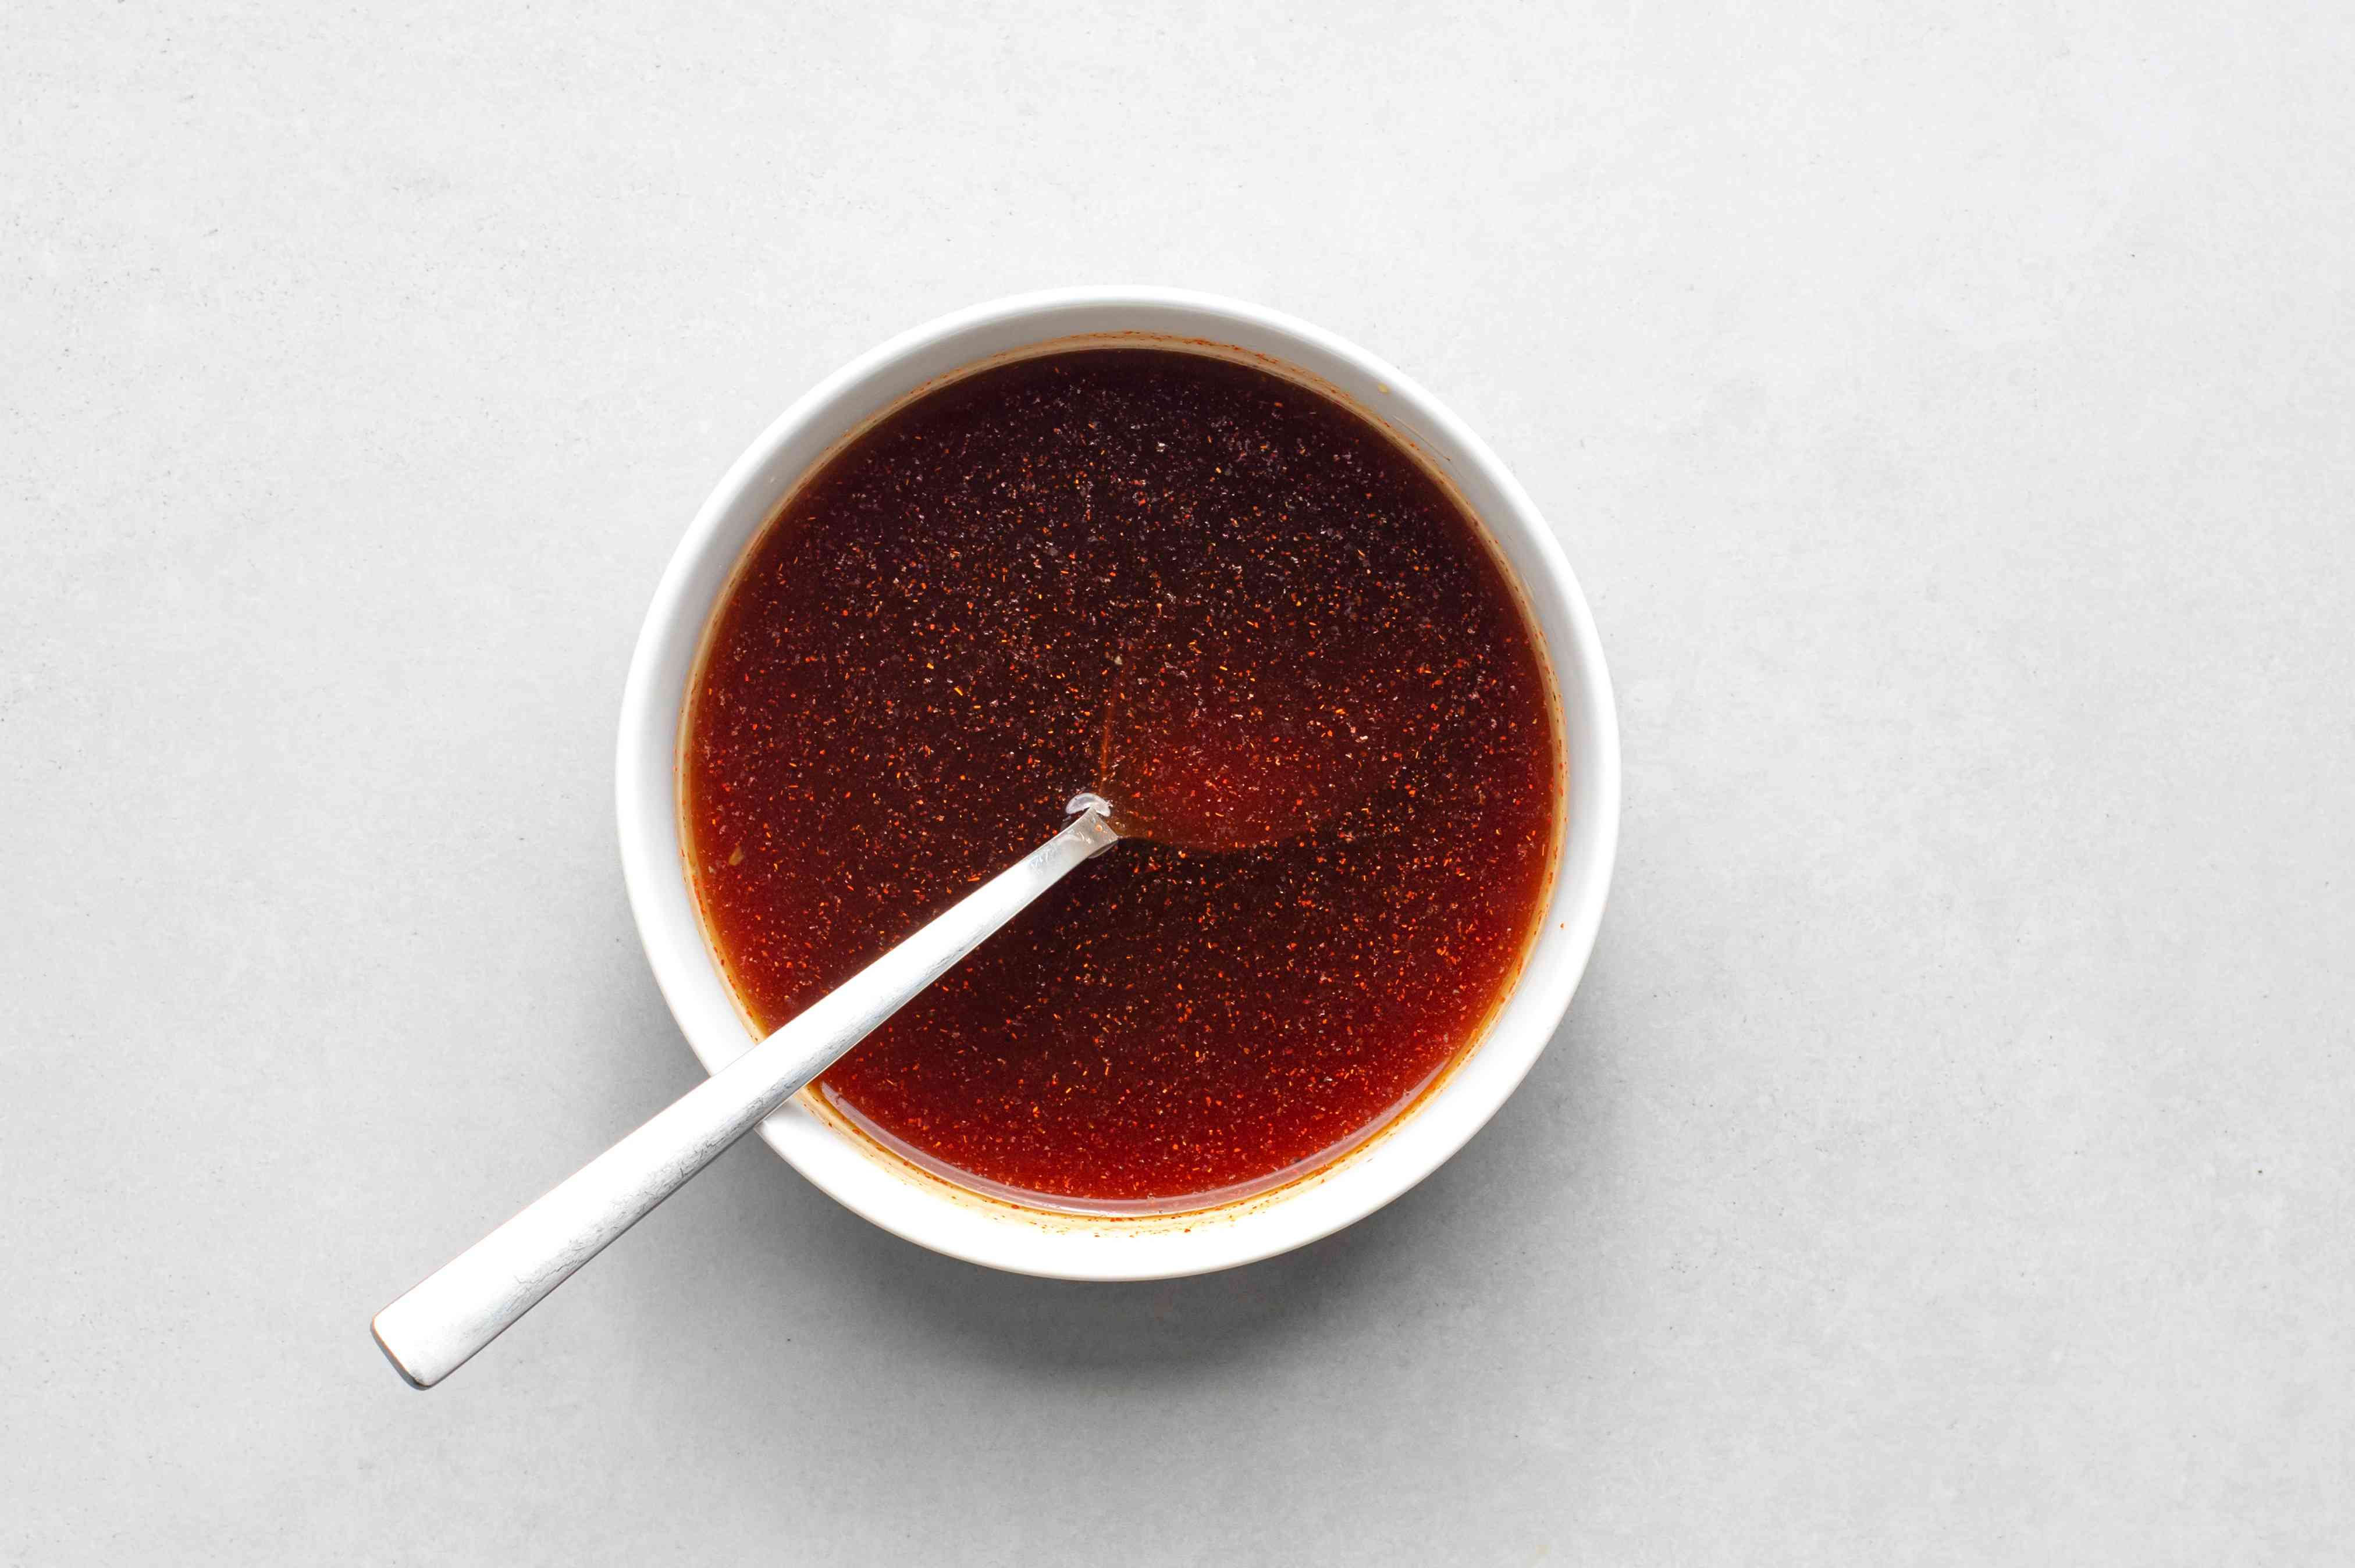 sauce in a bowl